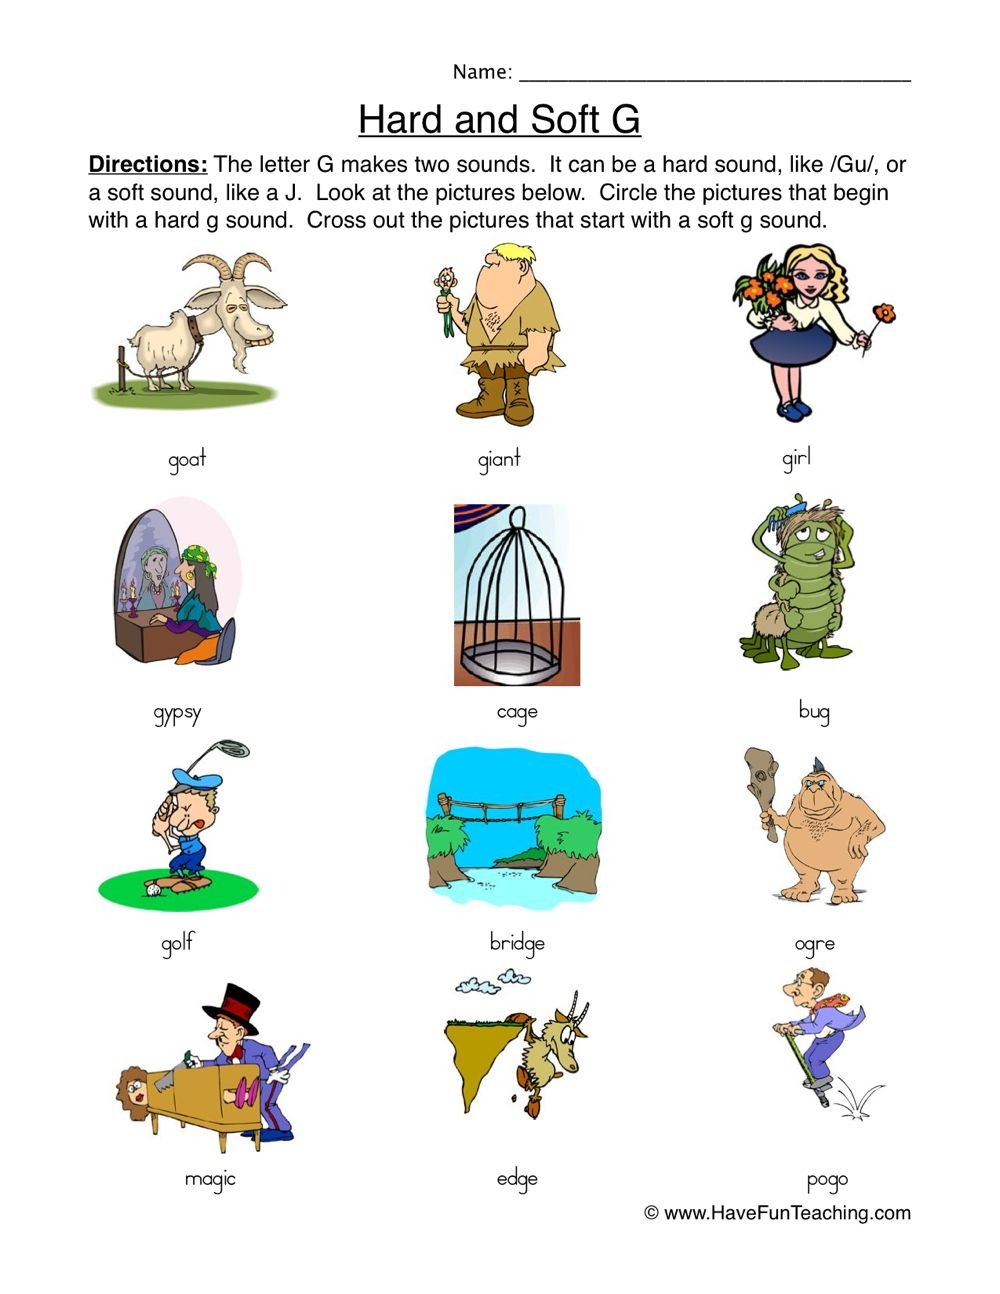 Hard soft g worksheet pictures in 2020 soft g words